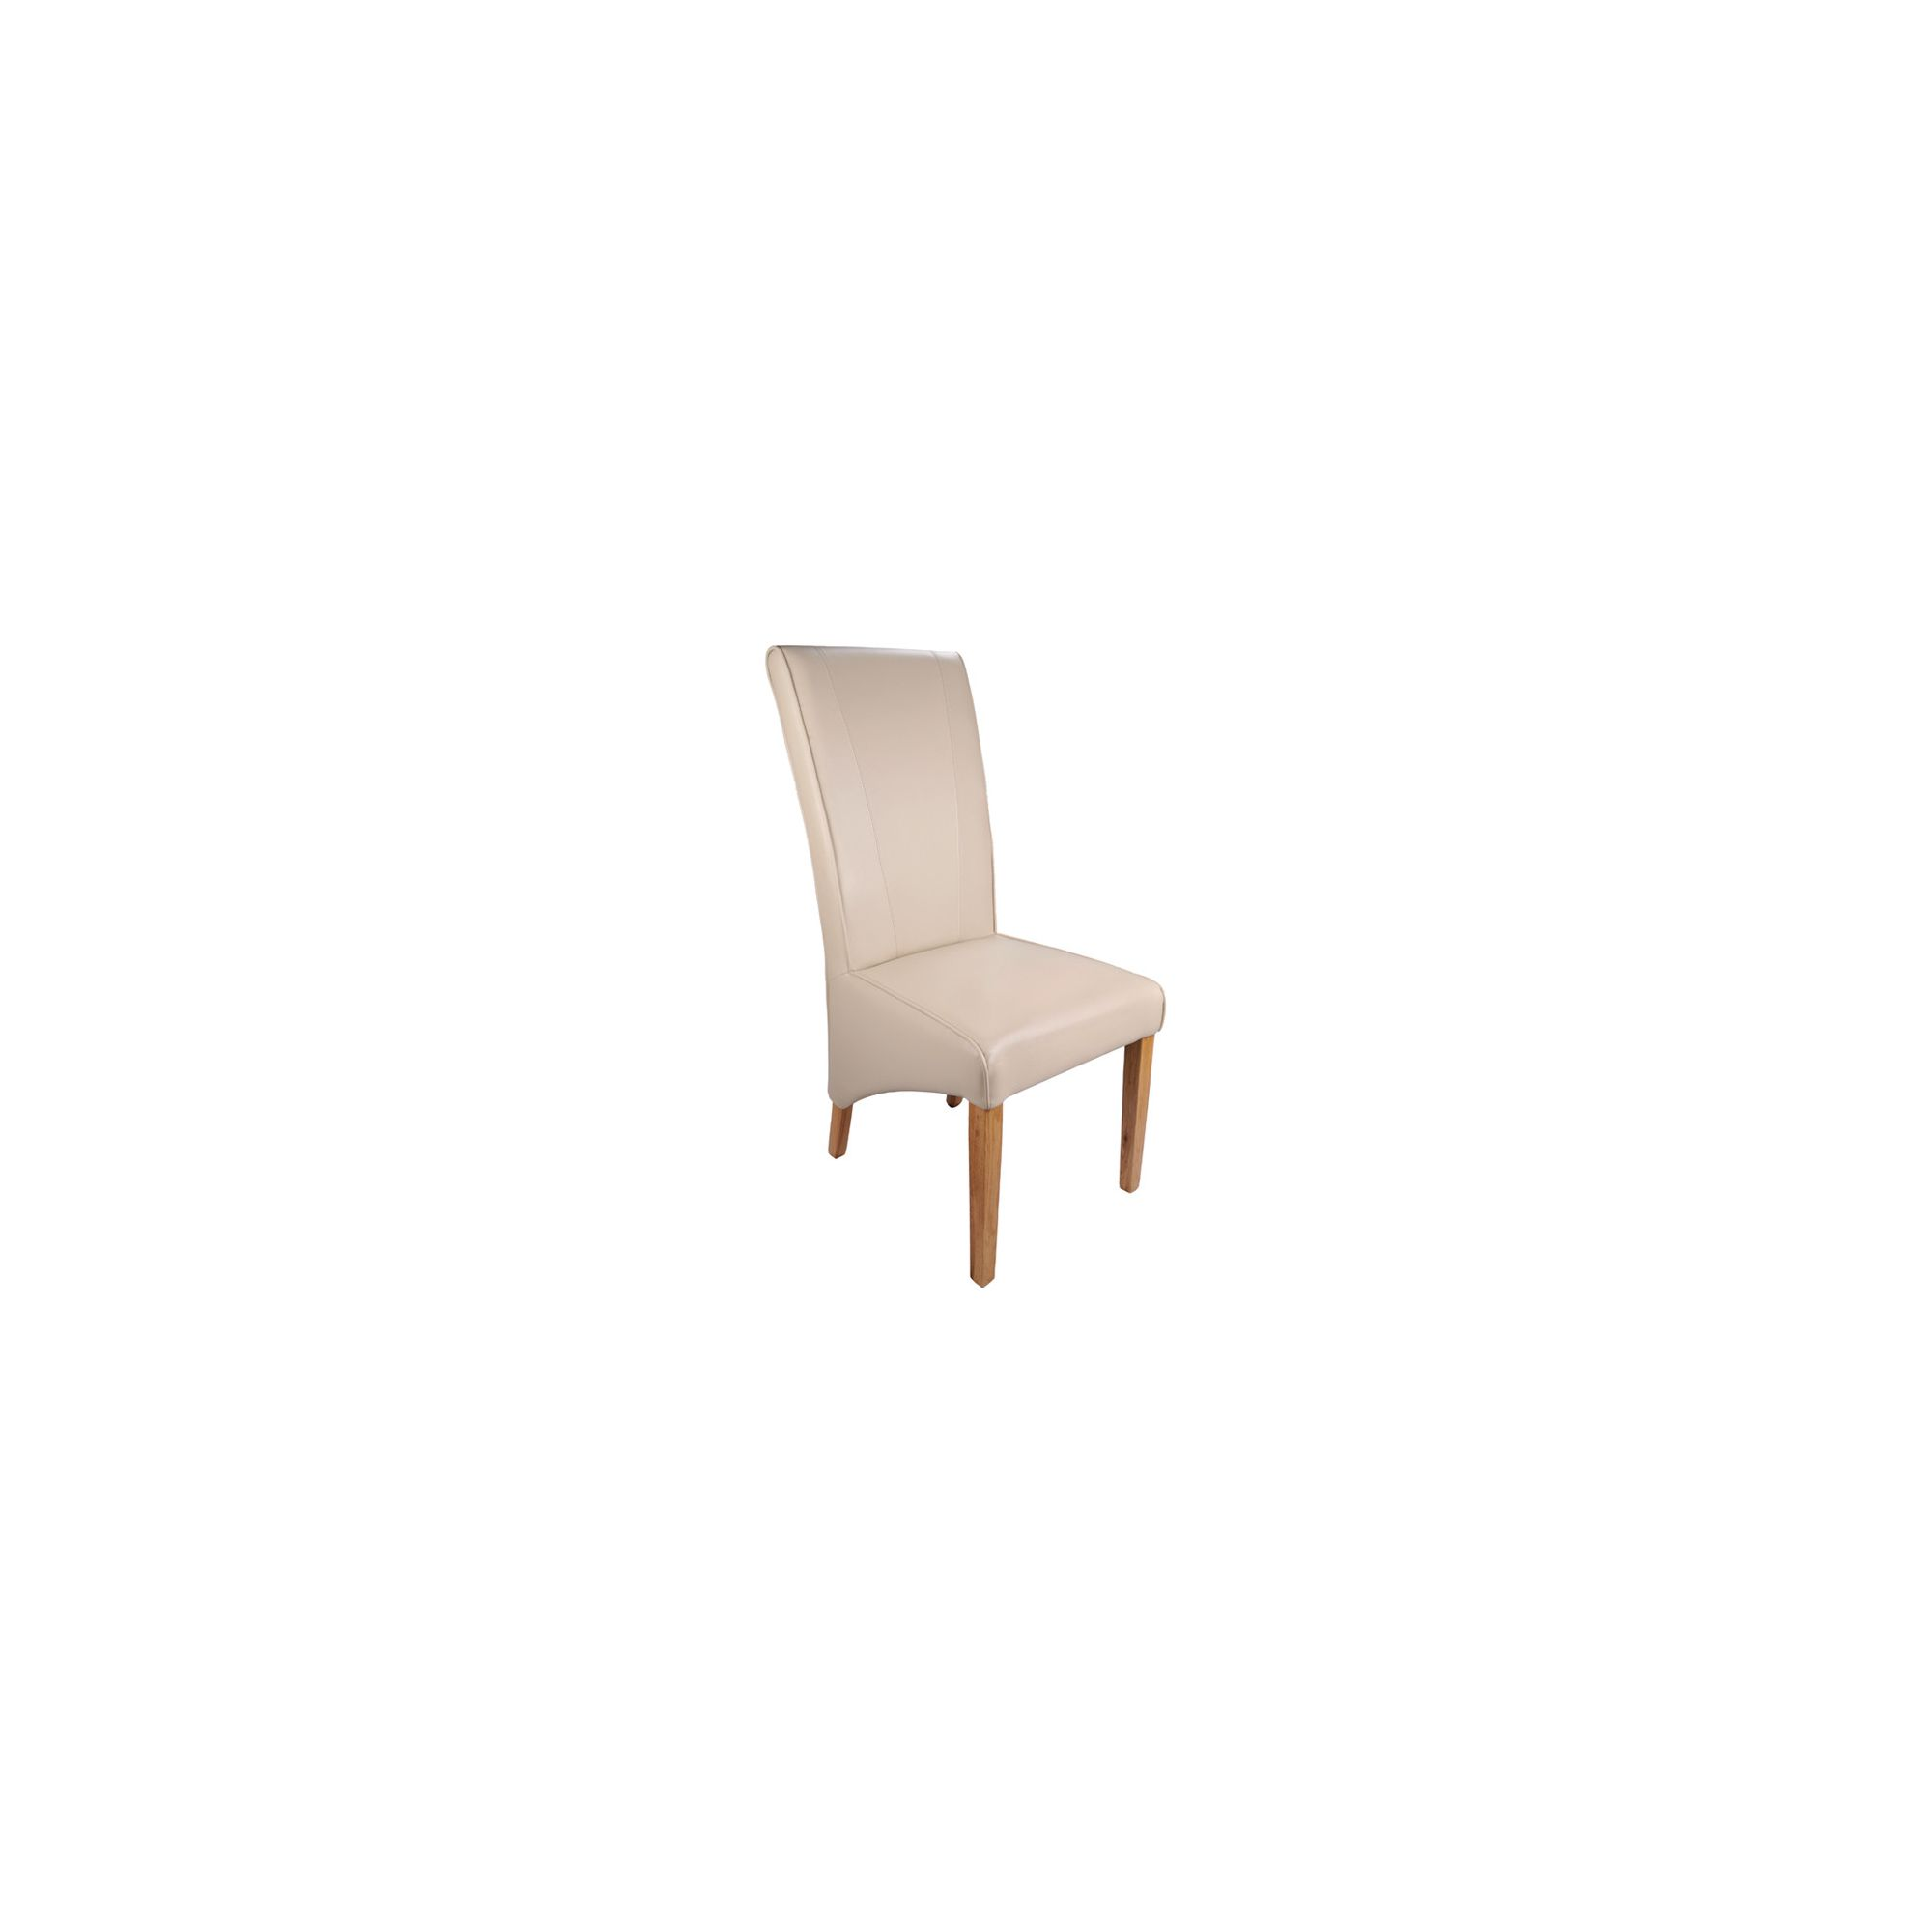 Shankar Enterprises Ma**eille Madras Leather Dining Chair (Set of 2) - Ivory